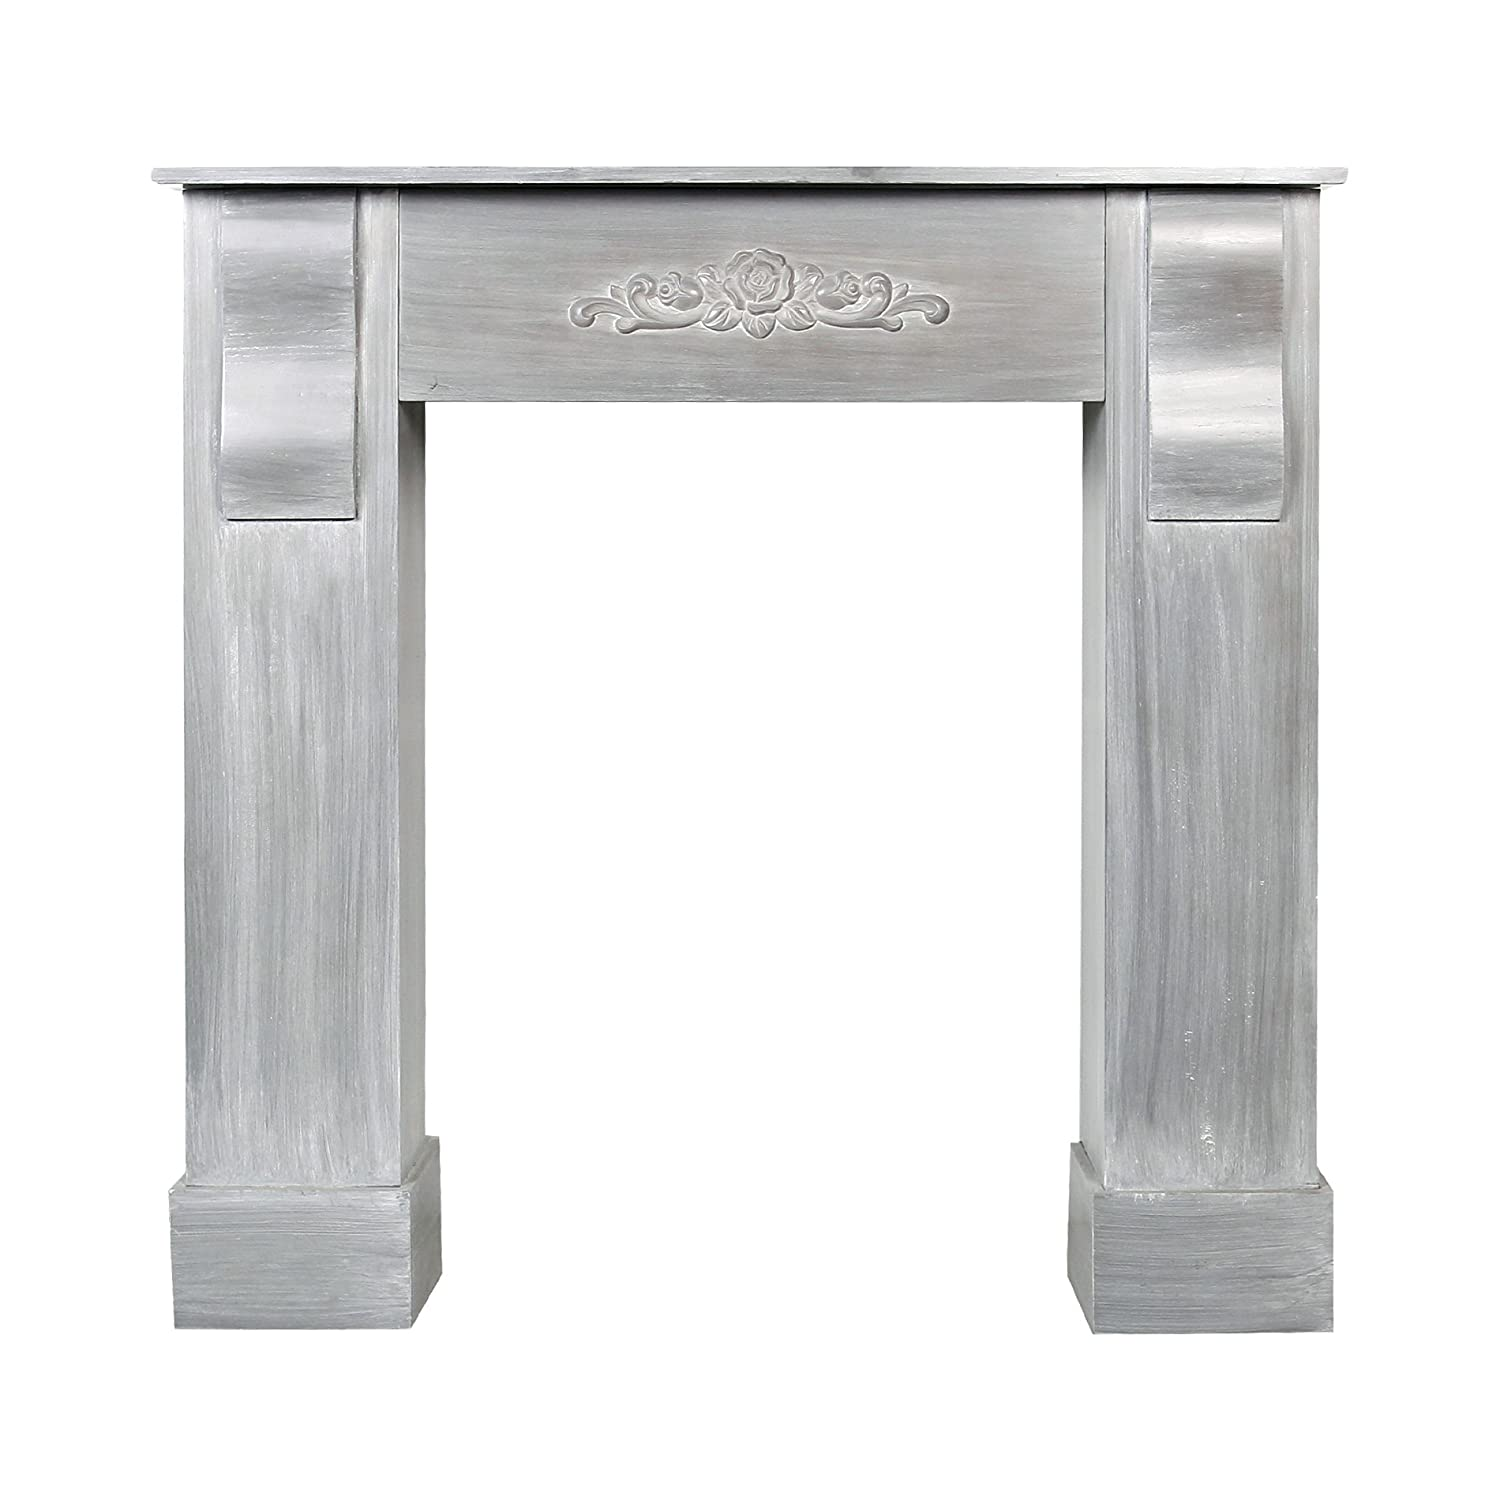 Rebecca srl Mantelpiece Fire Surround Furniture made of natural wood grey color with decoration in the middle and nice top shelf decorative item original Vintage Chic (Cod. 0-1919)